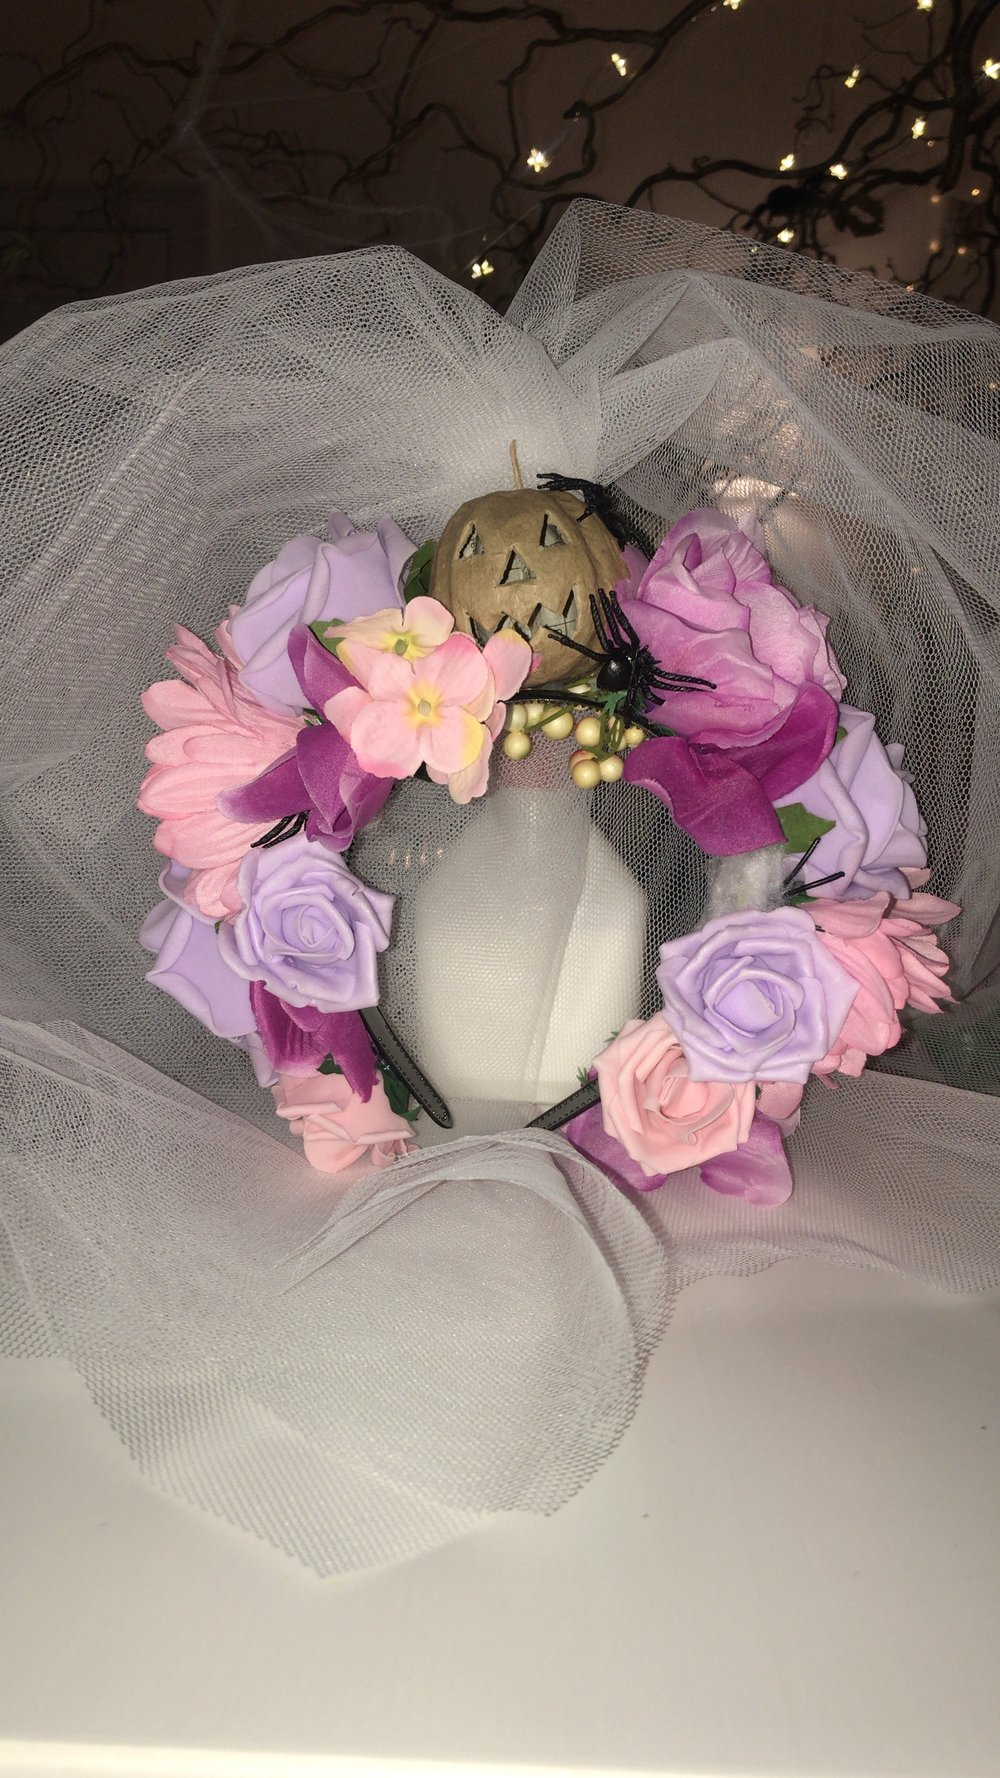 My beautiful Flower crown! I am so happy with her…